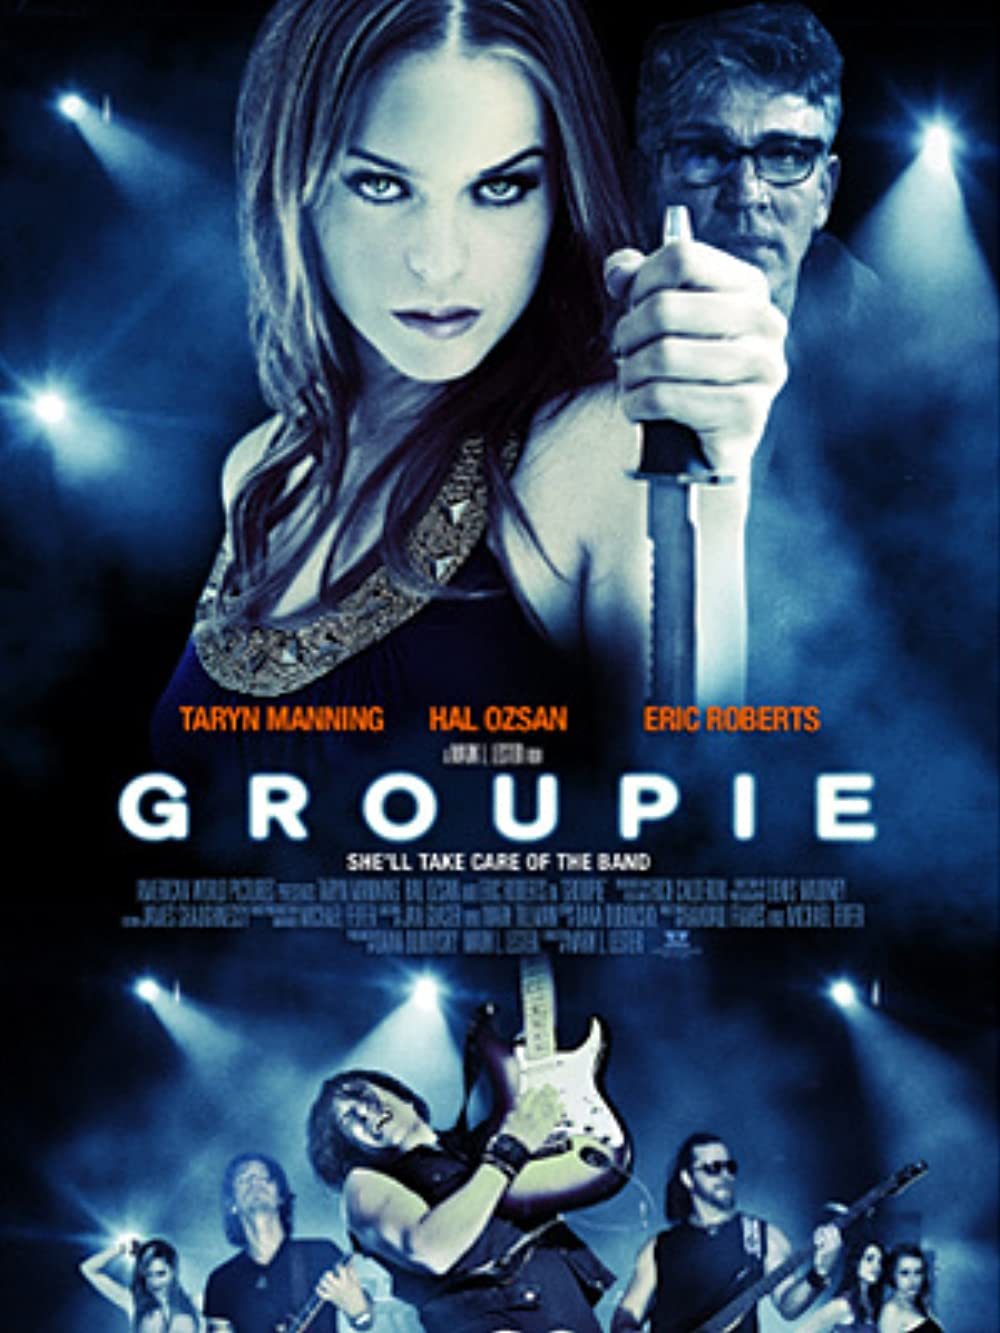 18+ Groupie 2010 Hindi Dual Audio 720p UNCUT BluRay 1.1GB Download